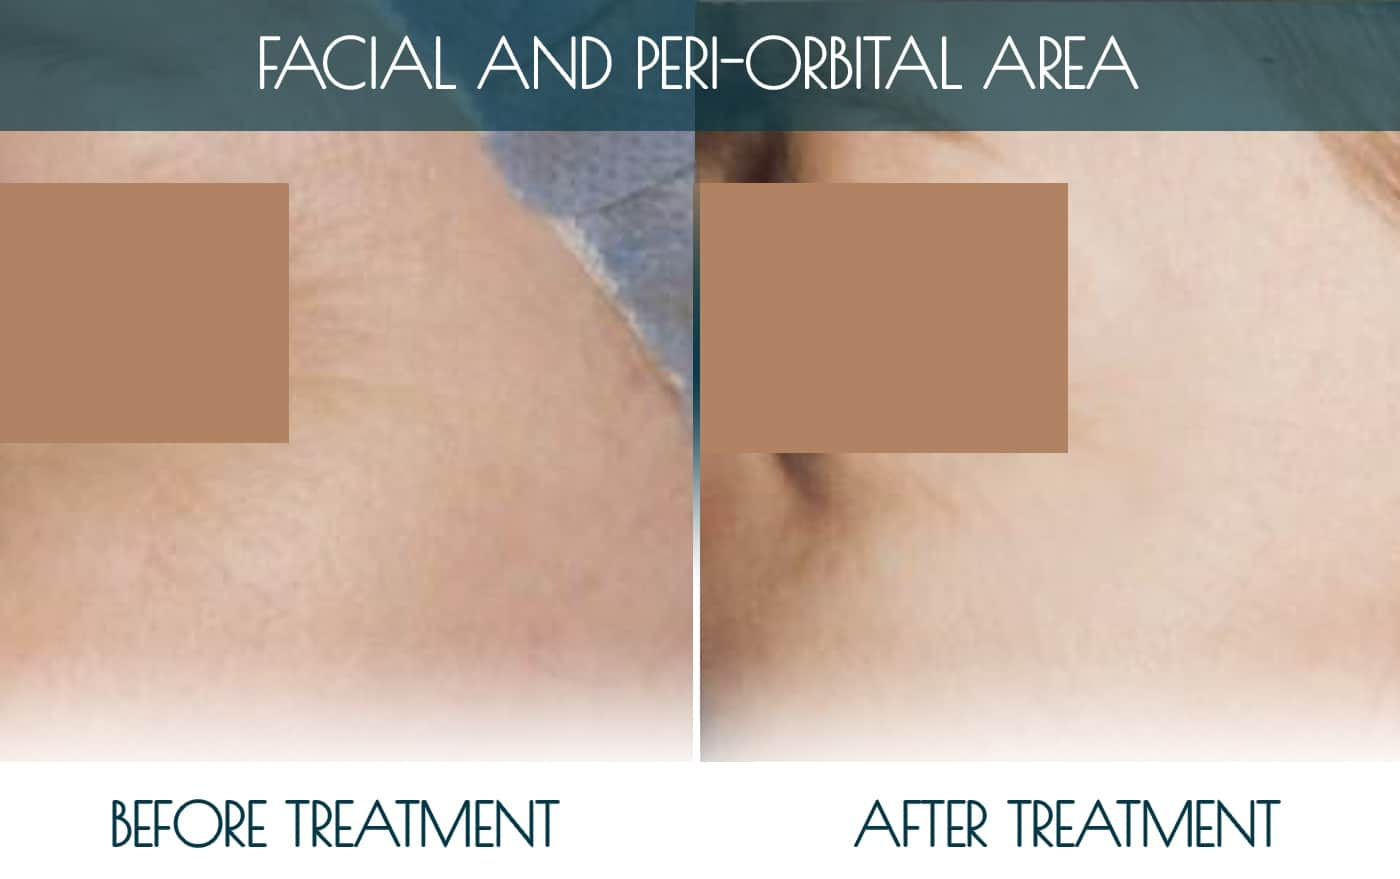 Befor-after_FACIAL-AND-PERI-ORBITAL-AREA-1